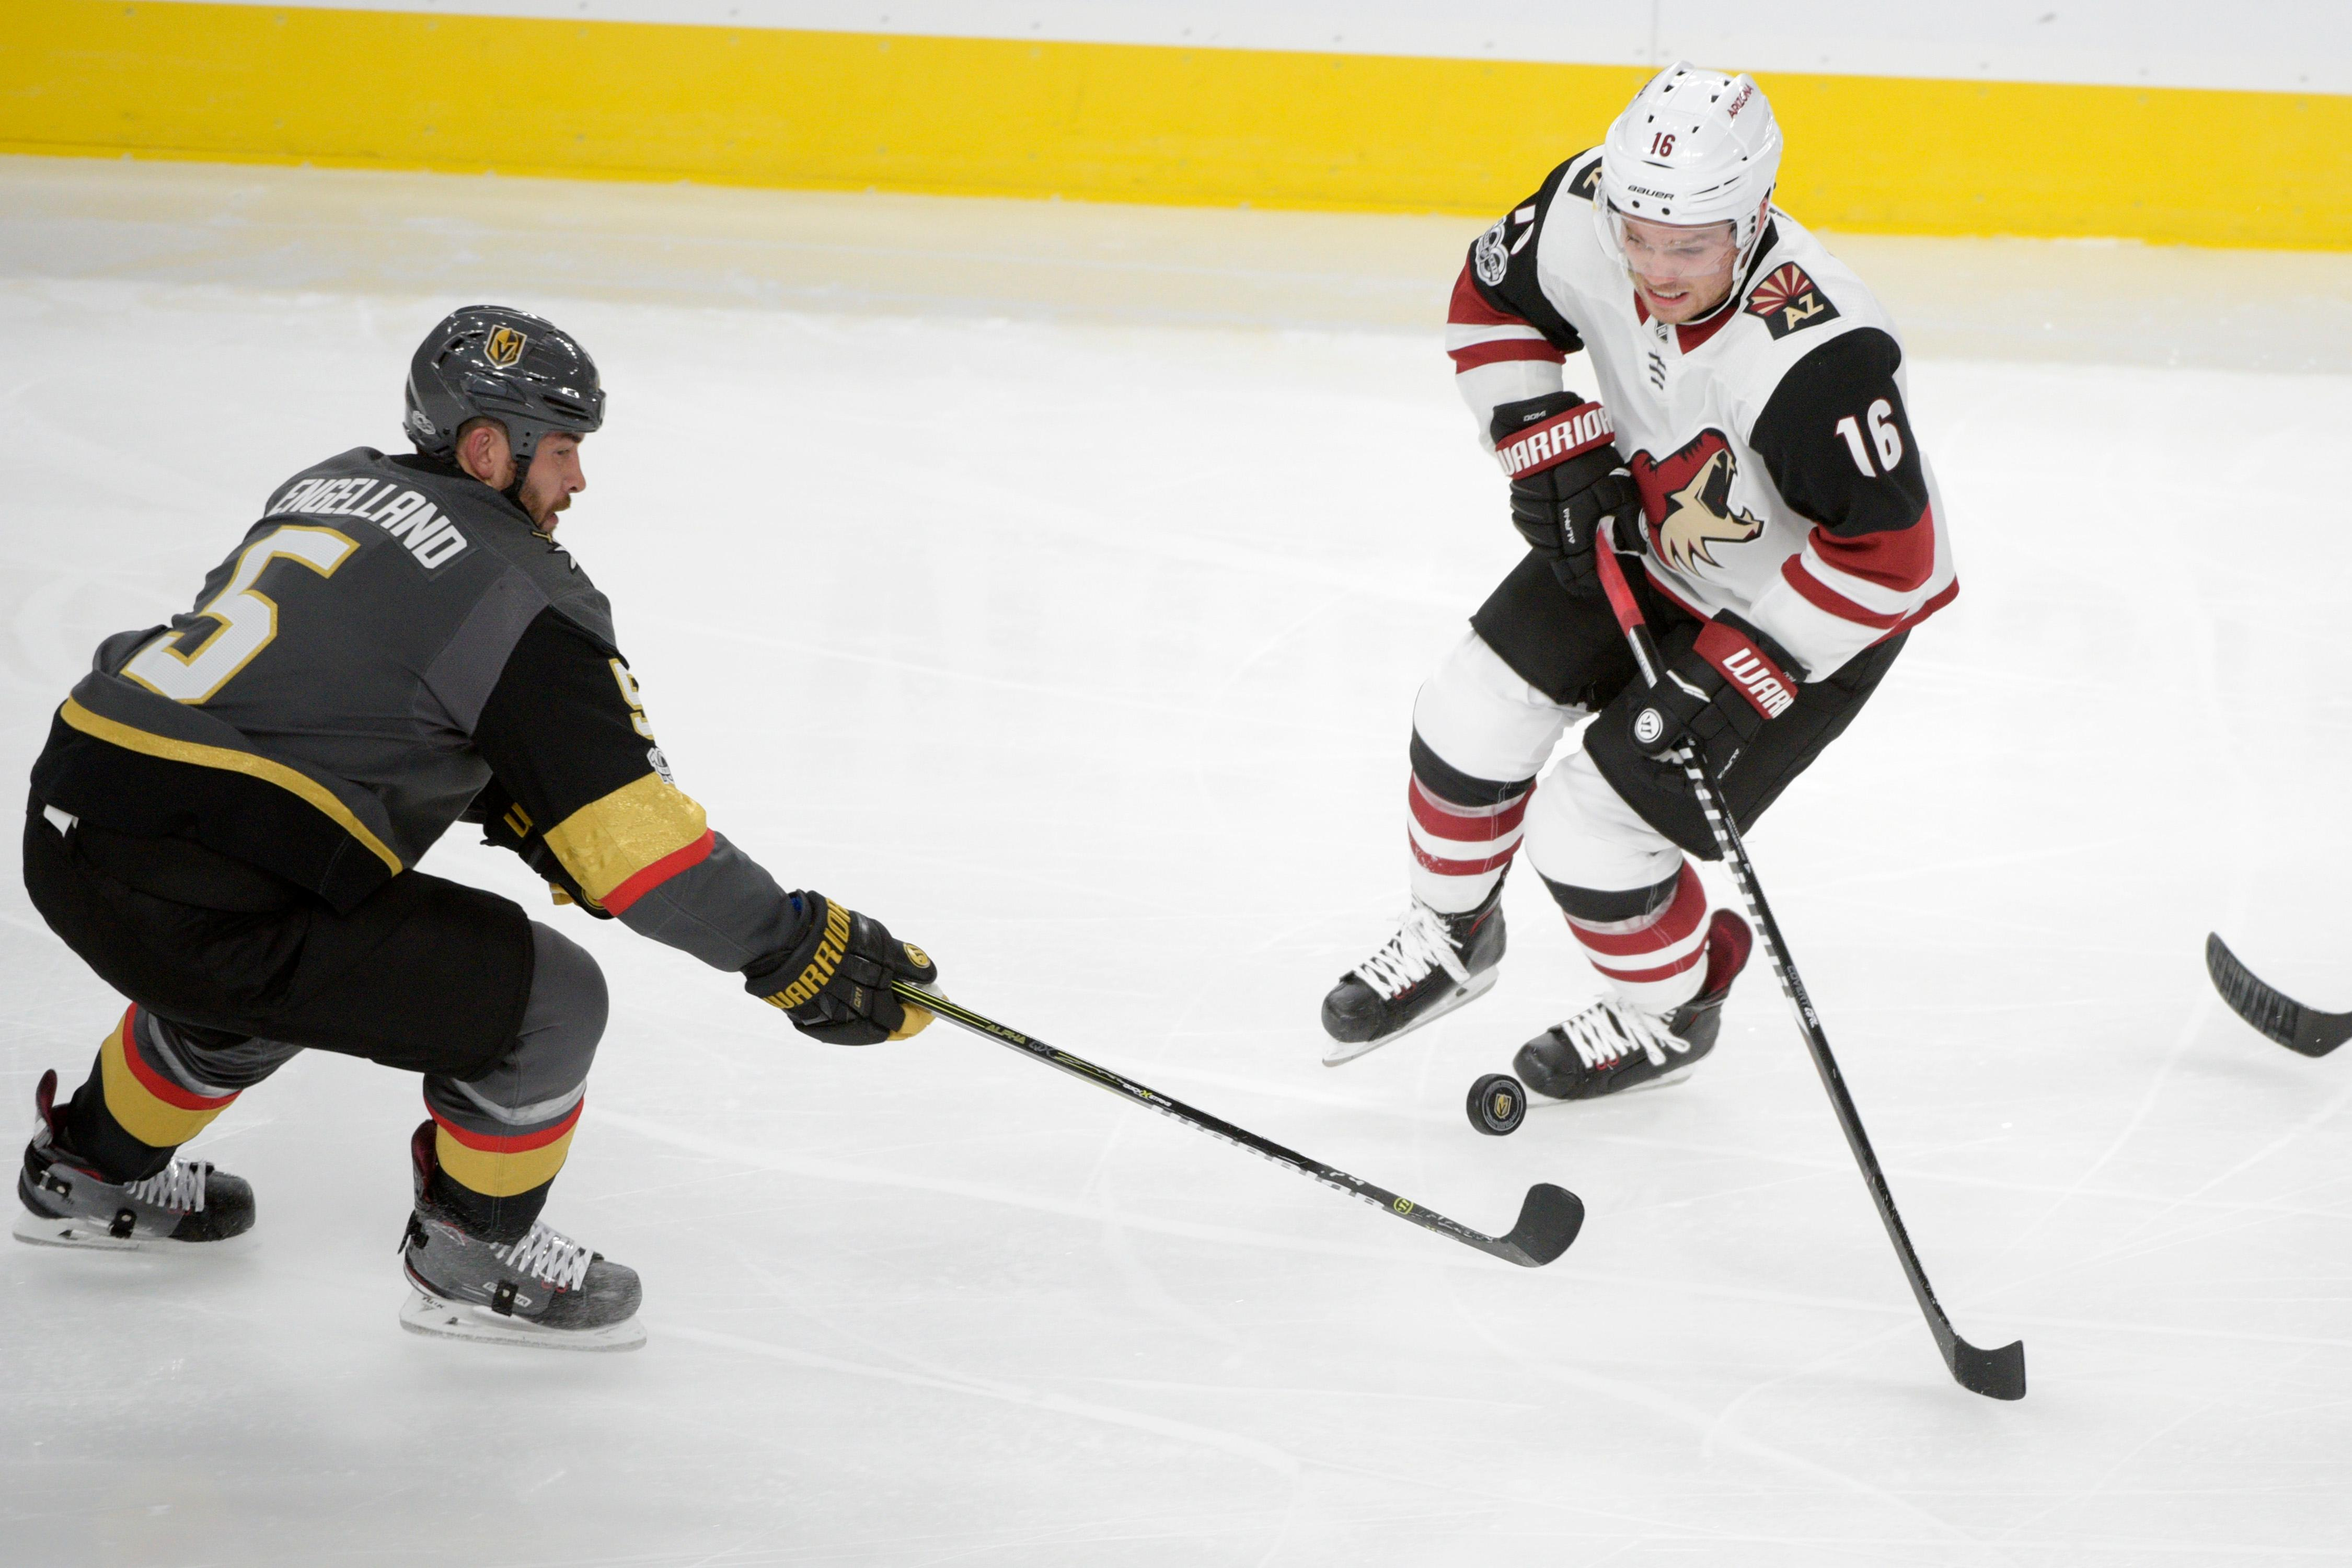 Vegas Golden Knights defenseman Deryk Engelland (5) passes the puck past Arizona Coyotes left wing Max Domi (16) during the Knights home opener Tuesday, Oct. 10, 2017, at the T-Mobile Arena. The Knights won 5-2 to extend their winning streak to 3-0. CREDIT: Sam Morris/Las Vegas News Bureau